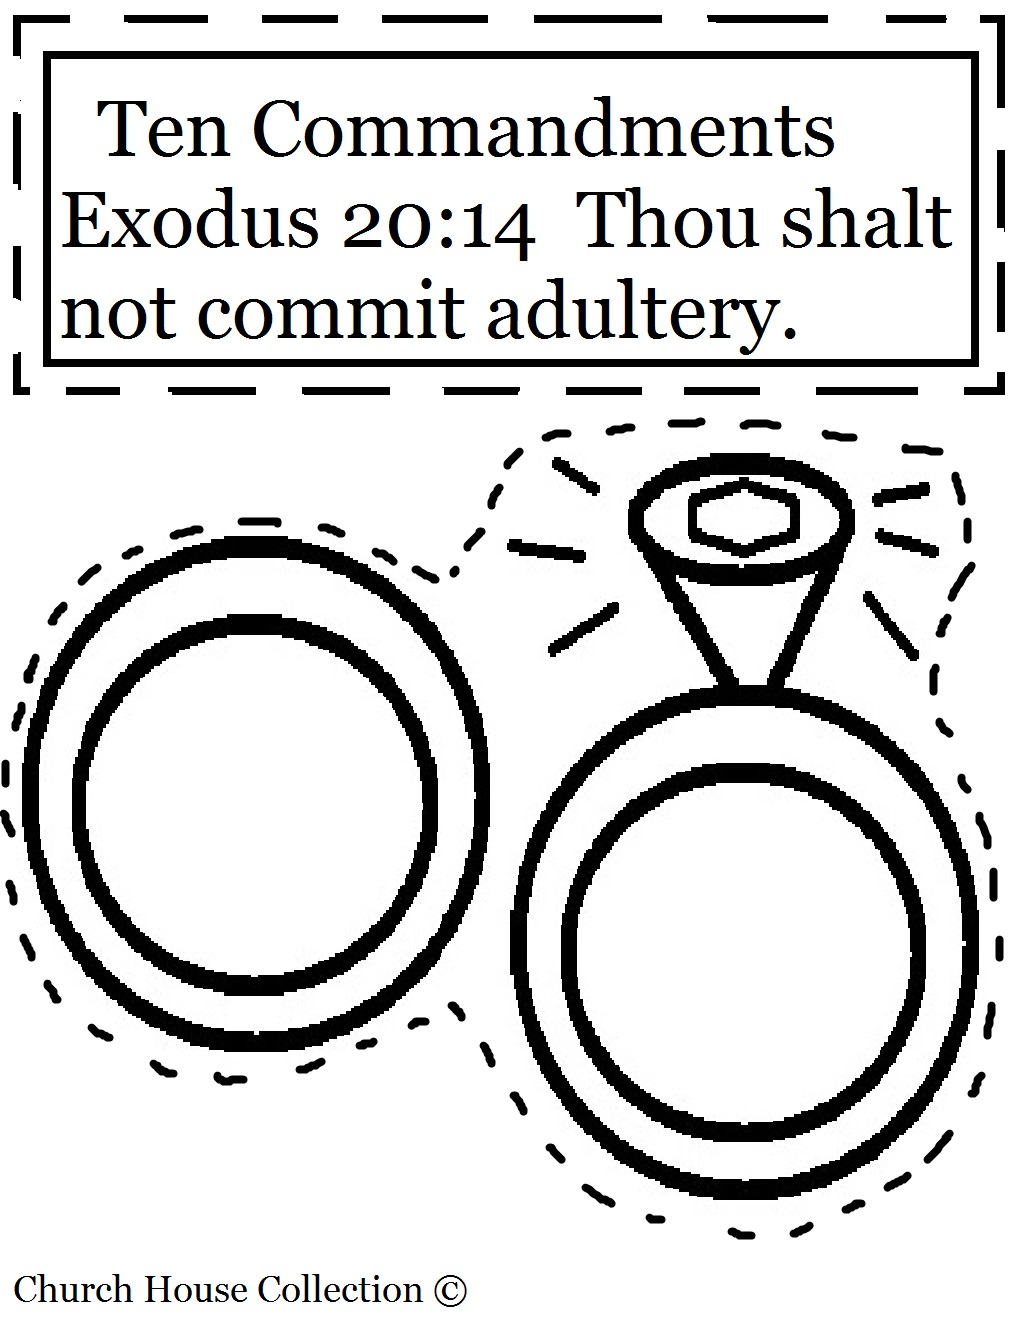 Church House Collection Blog: Thou Shalt Not Commit